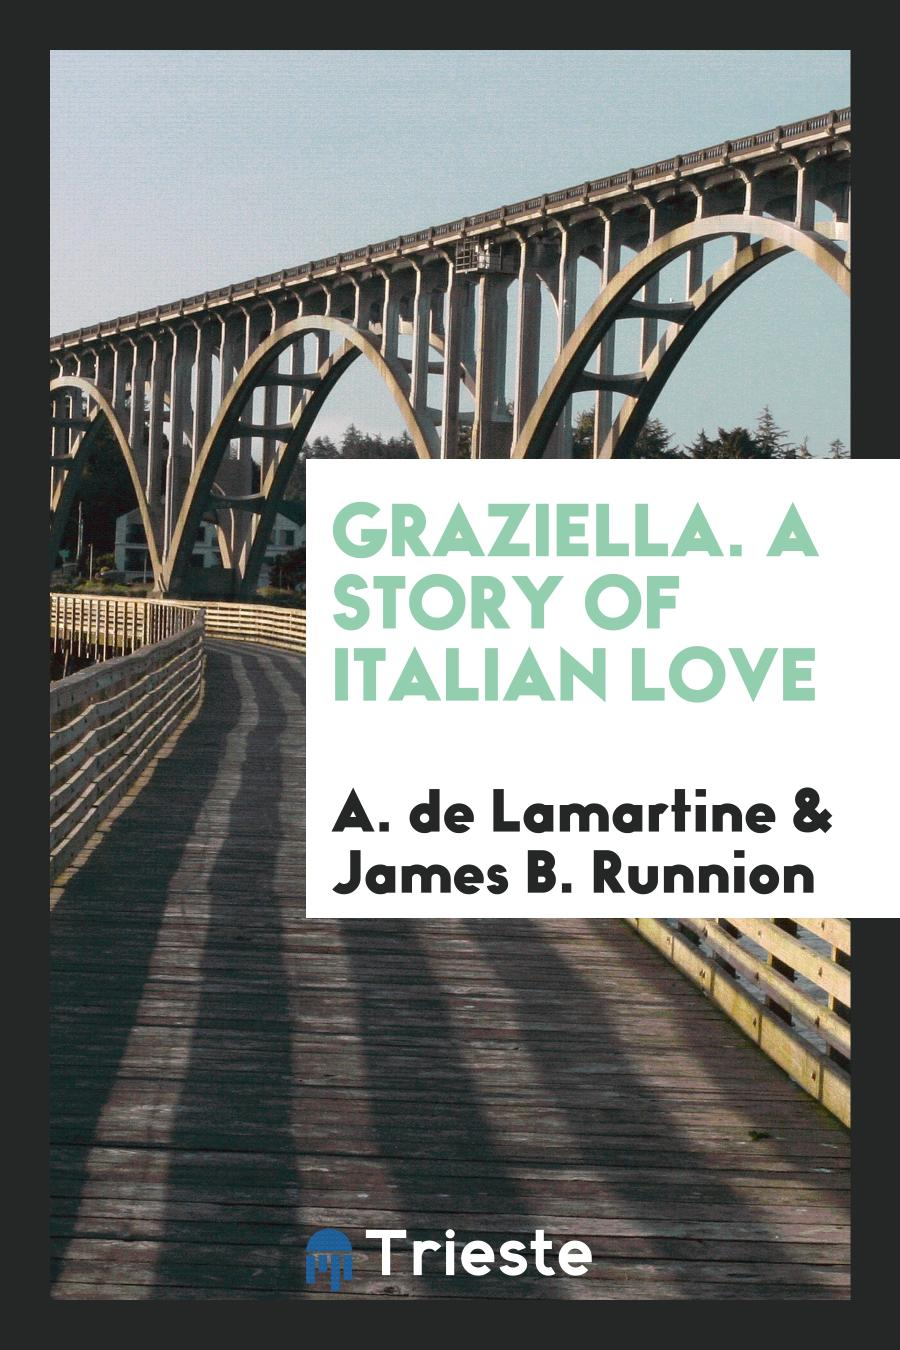 Graziella. A story of Italian love